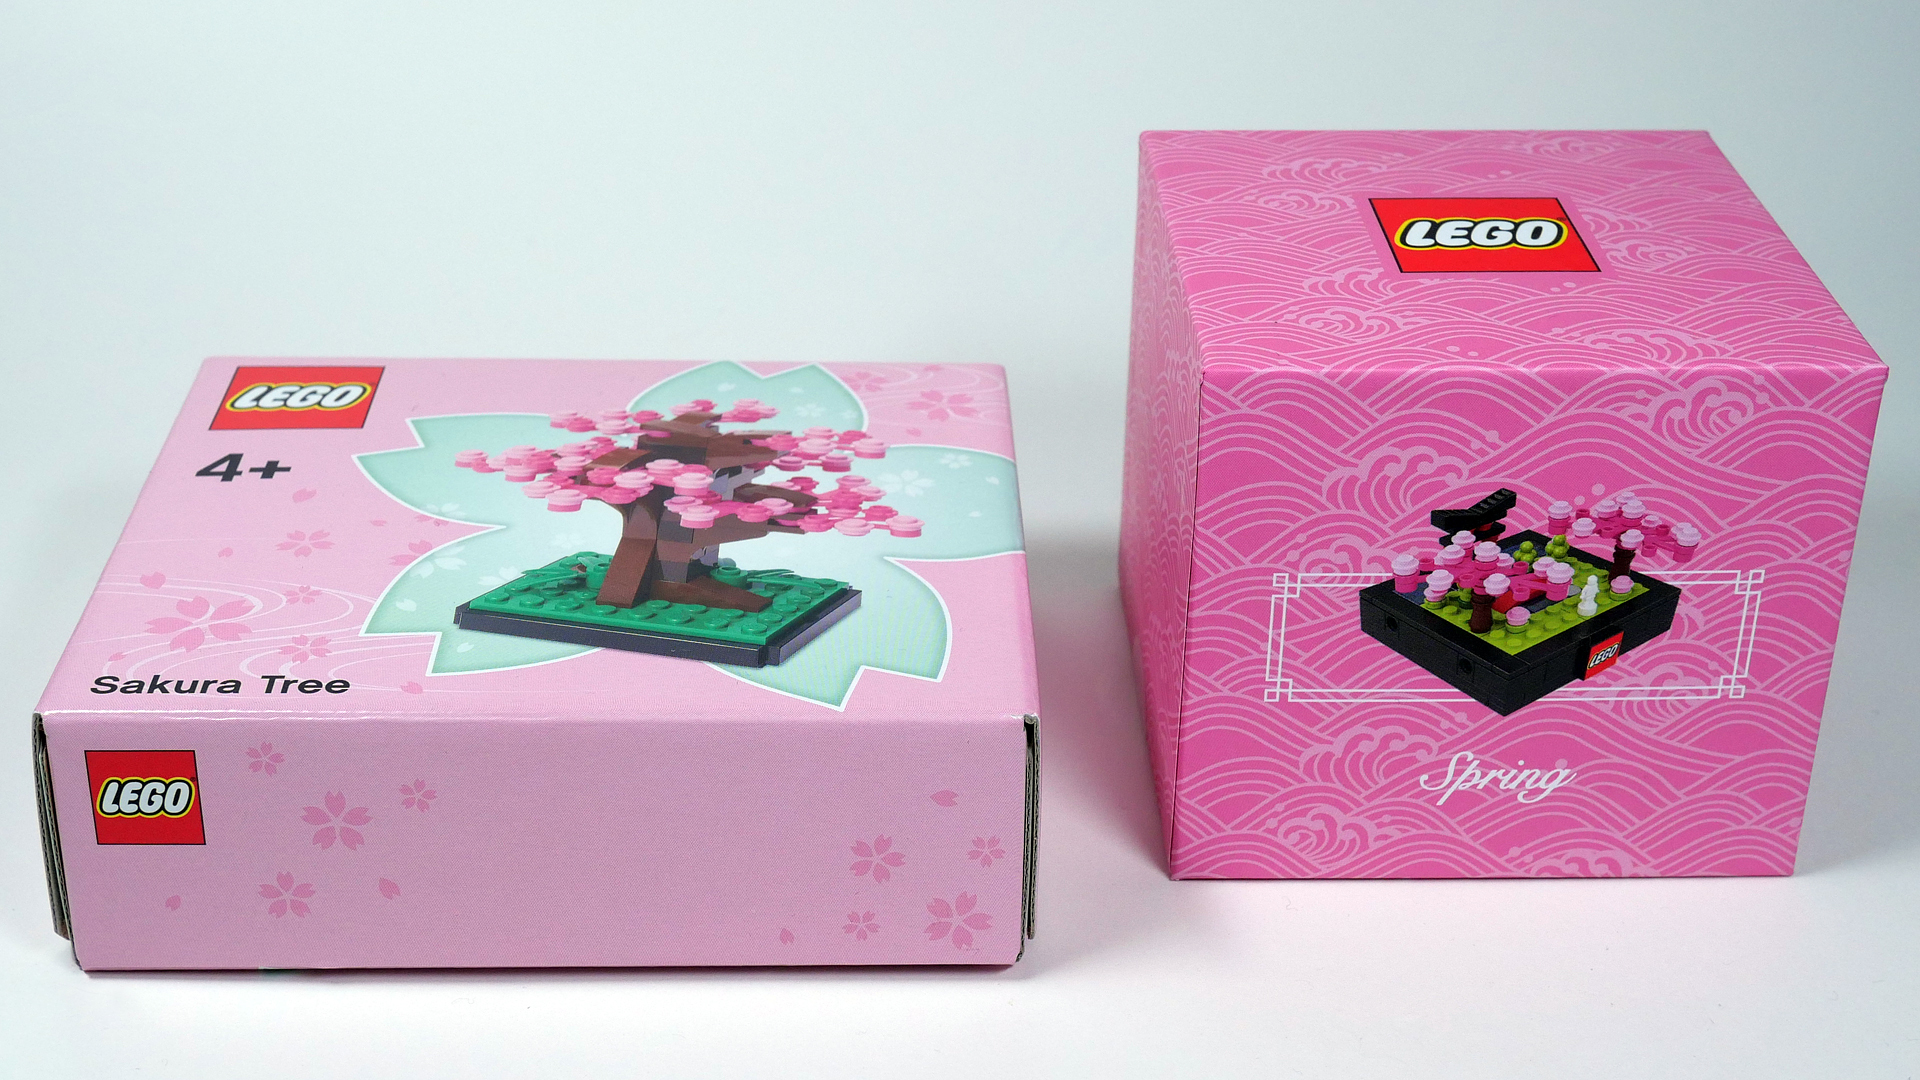 lego-sakura-tree-japan-brick-fan-town-vergleich-spring